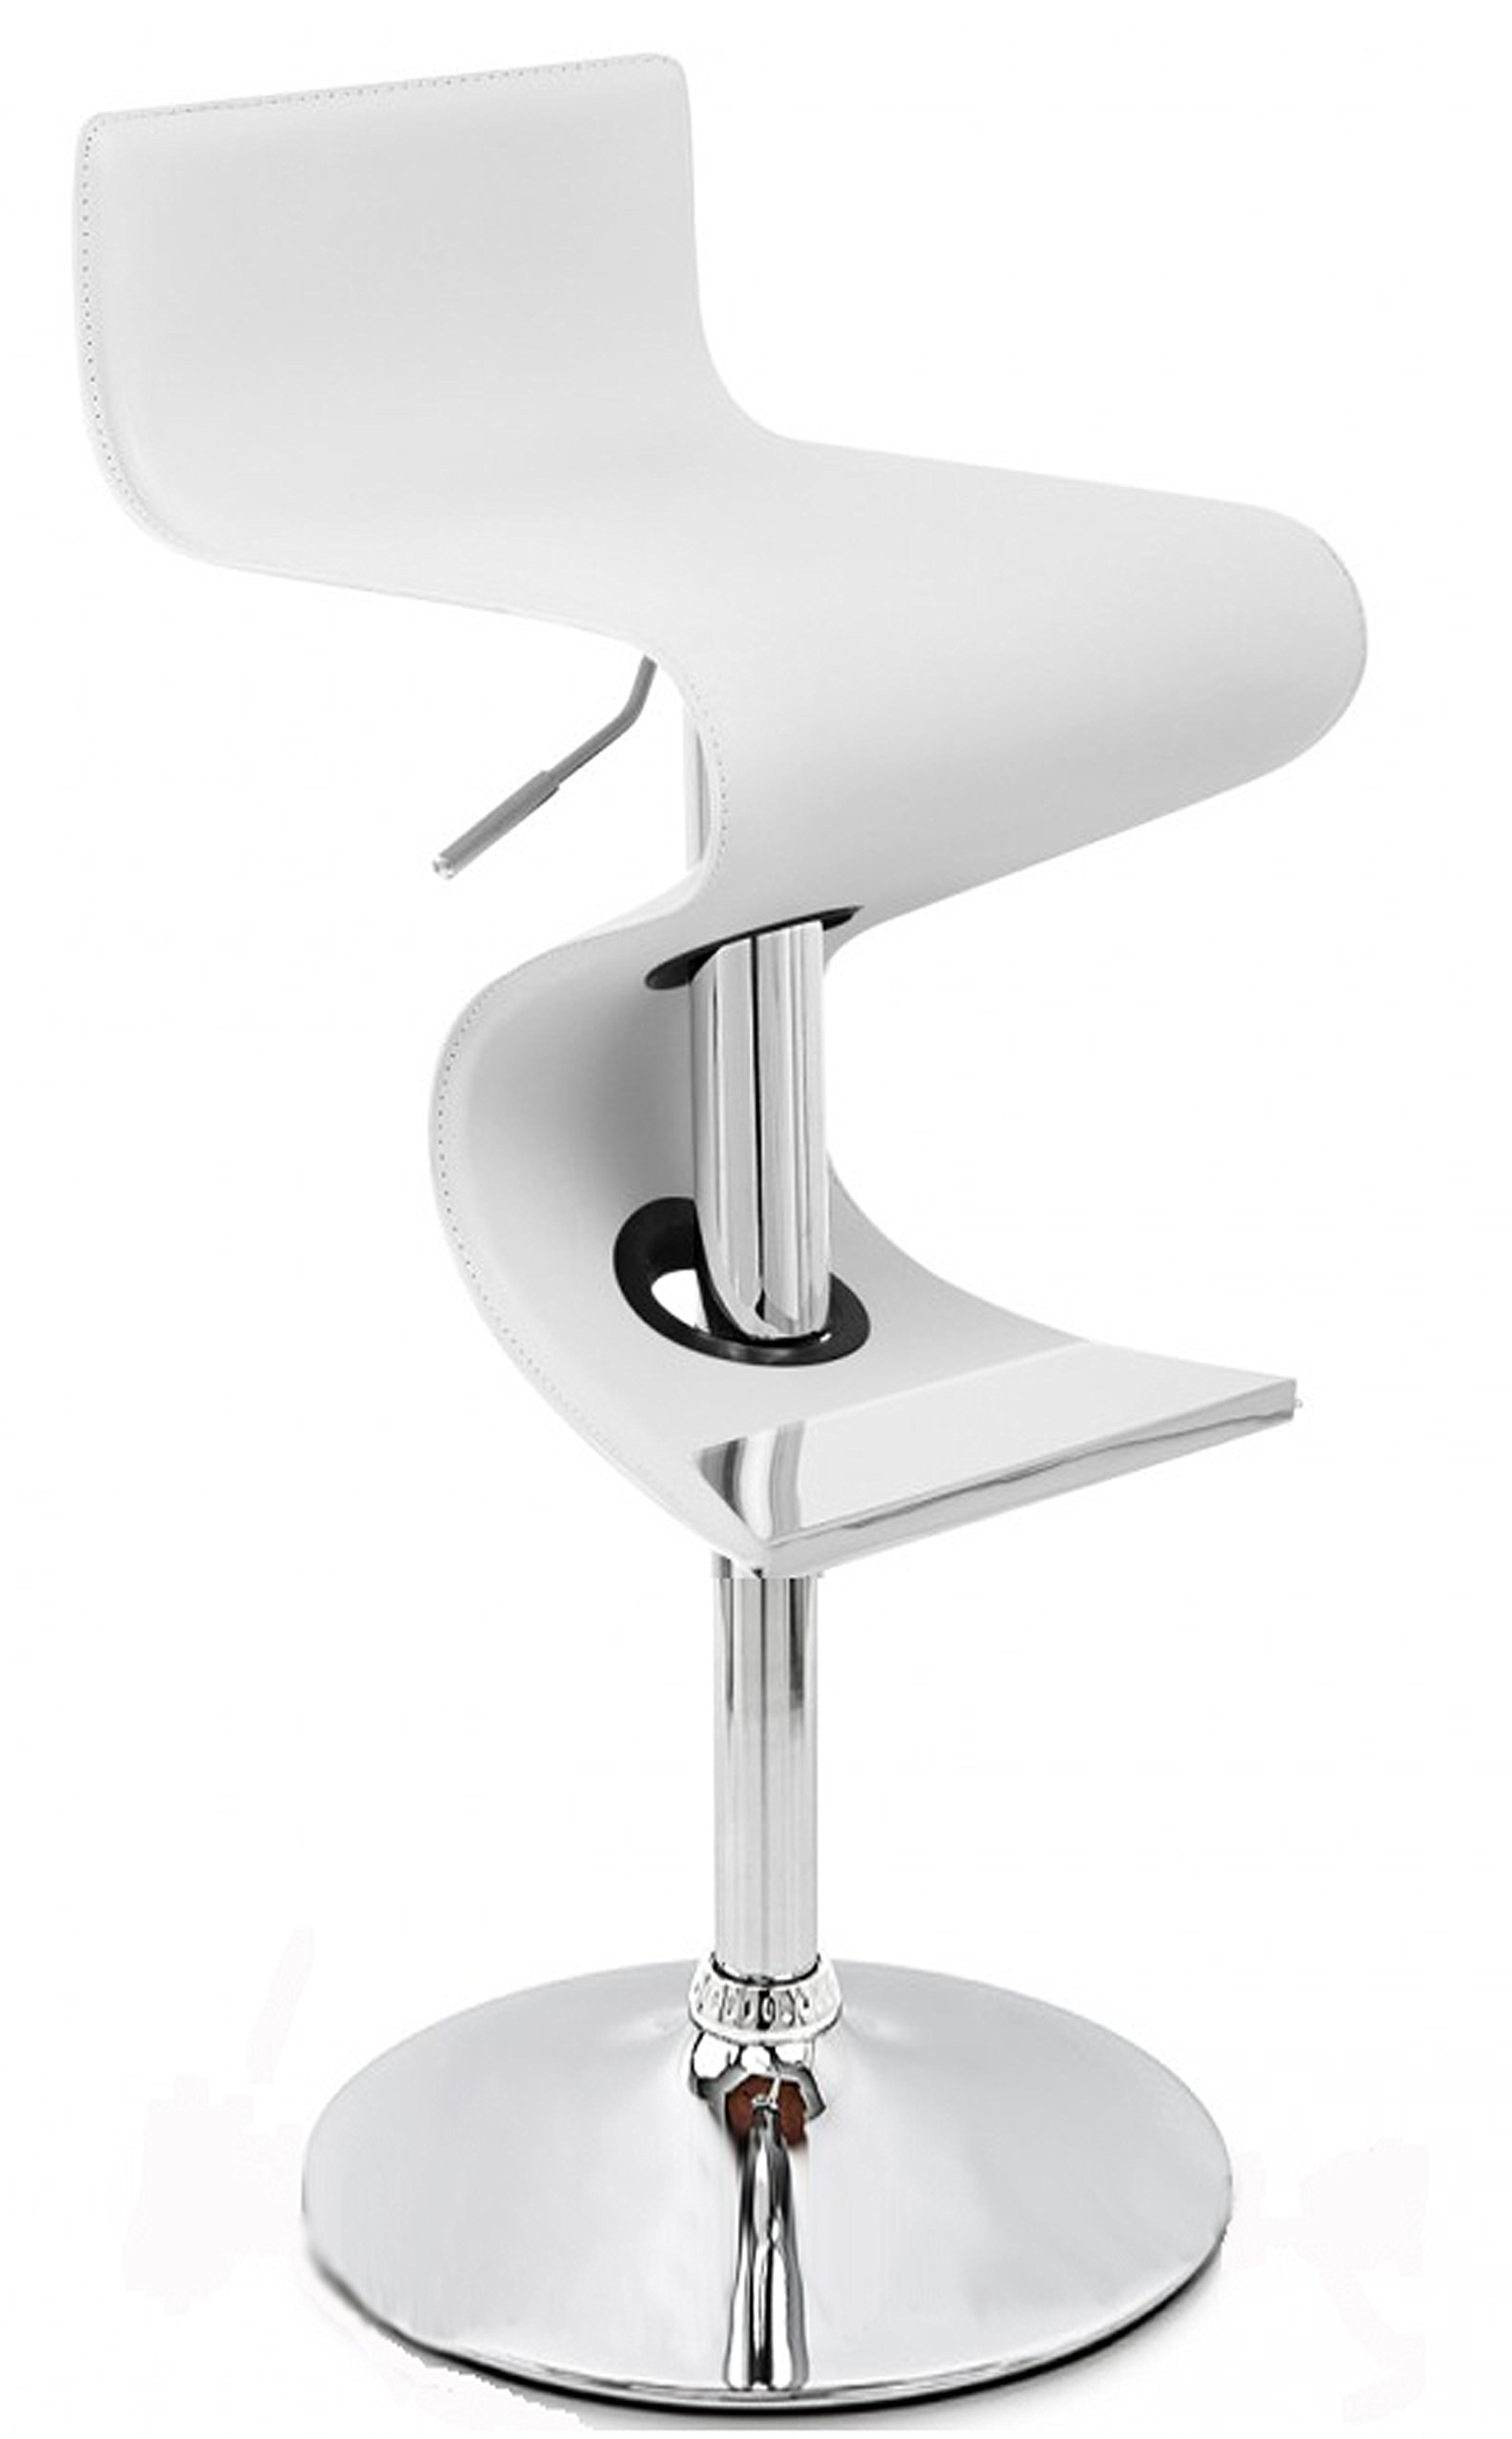 Neos Modern Furniture S958WH Modern Adjustable PU Leather Swivel Bar Stool, 15'' White by Neos Modern Furniture